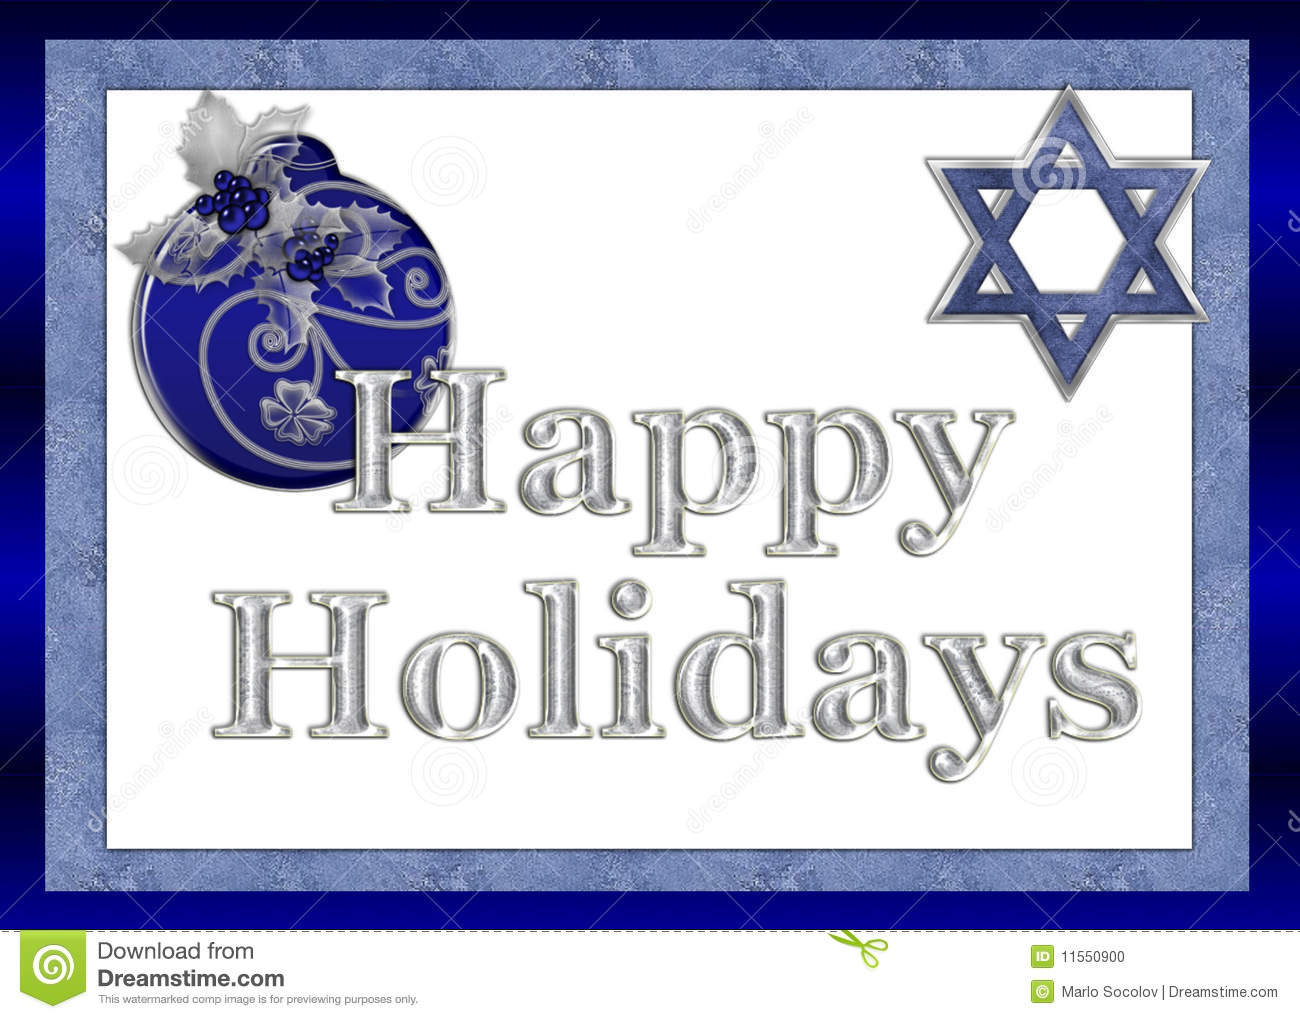 Happy holidays jewish greeting card stock illustration happy holidays jewish greeting card kristyandbryce Images